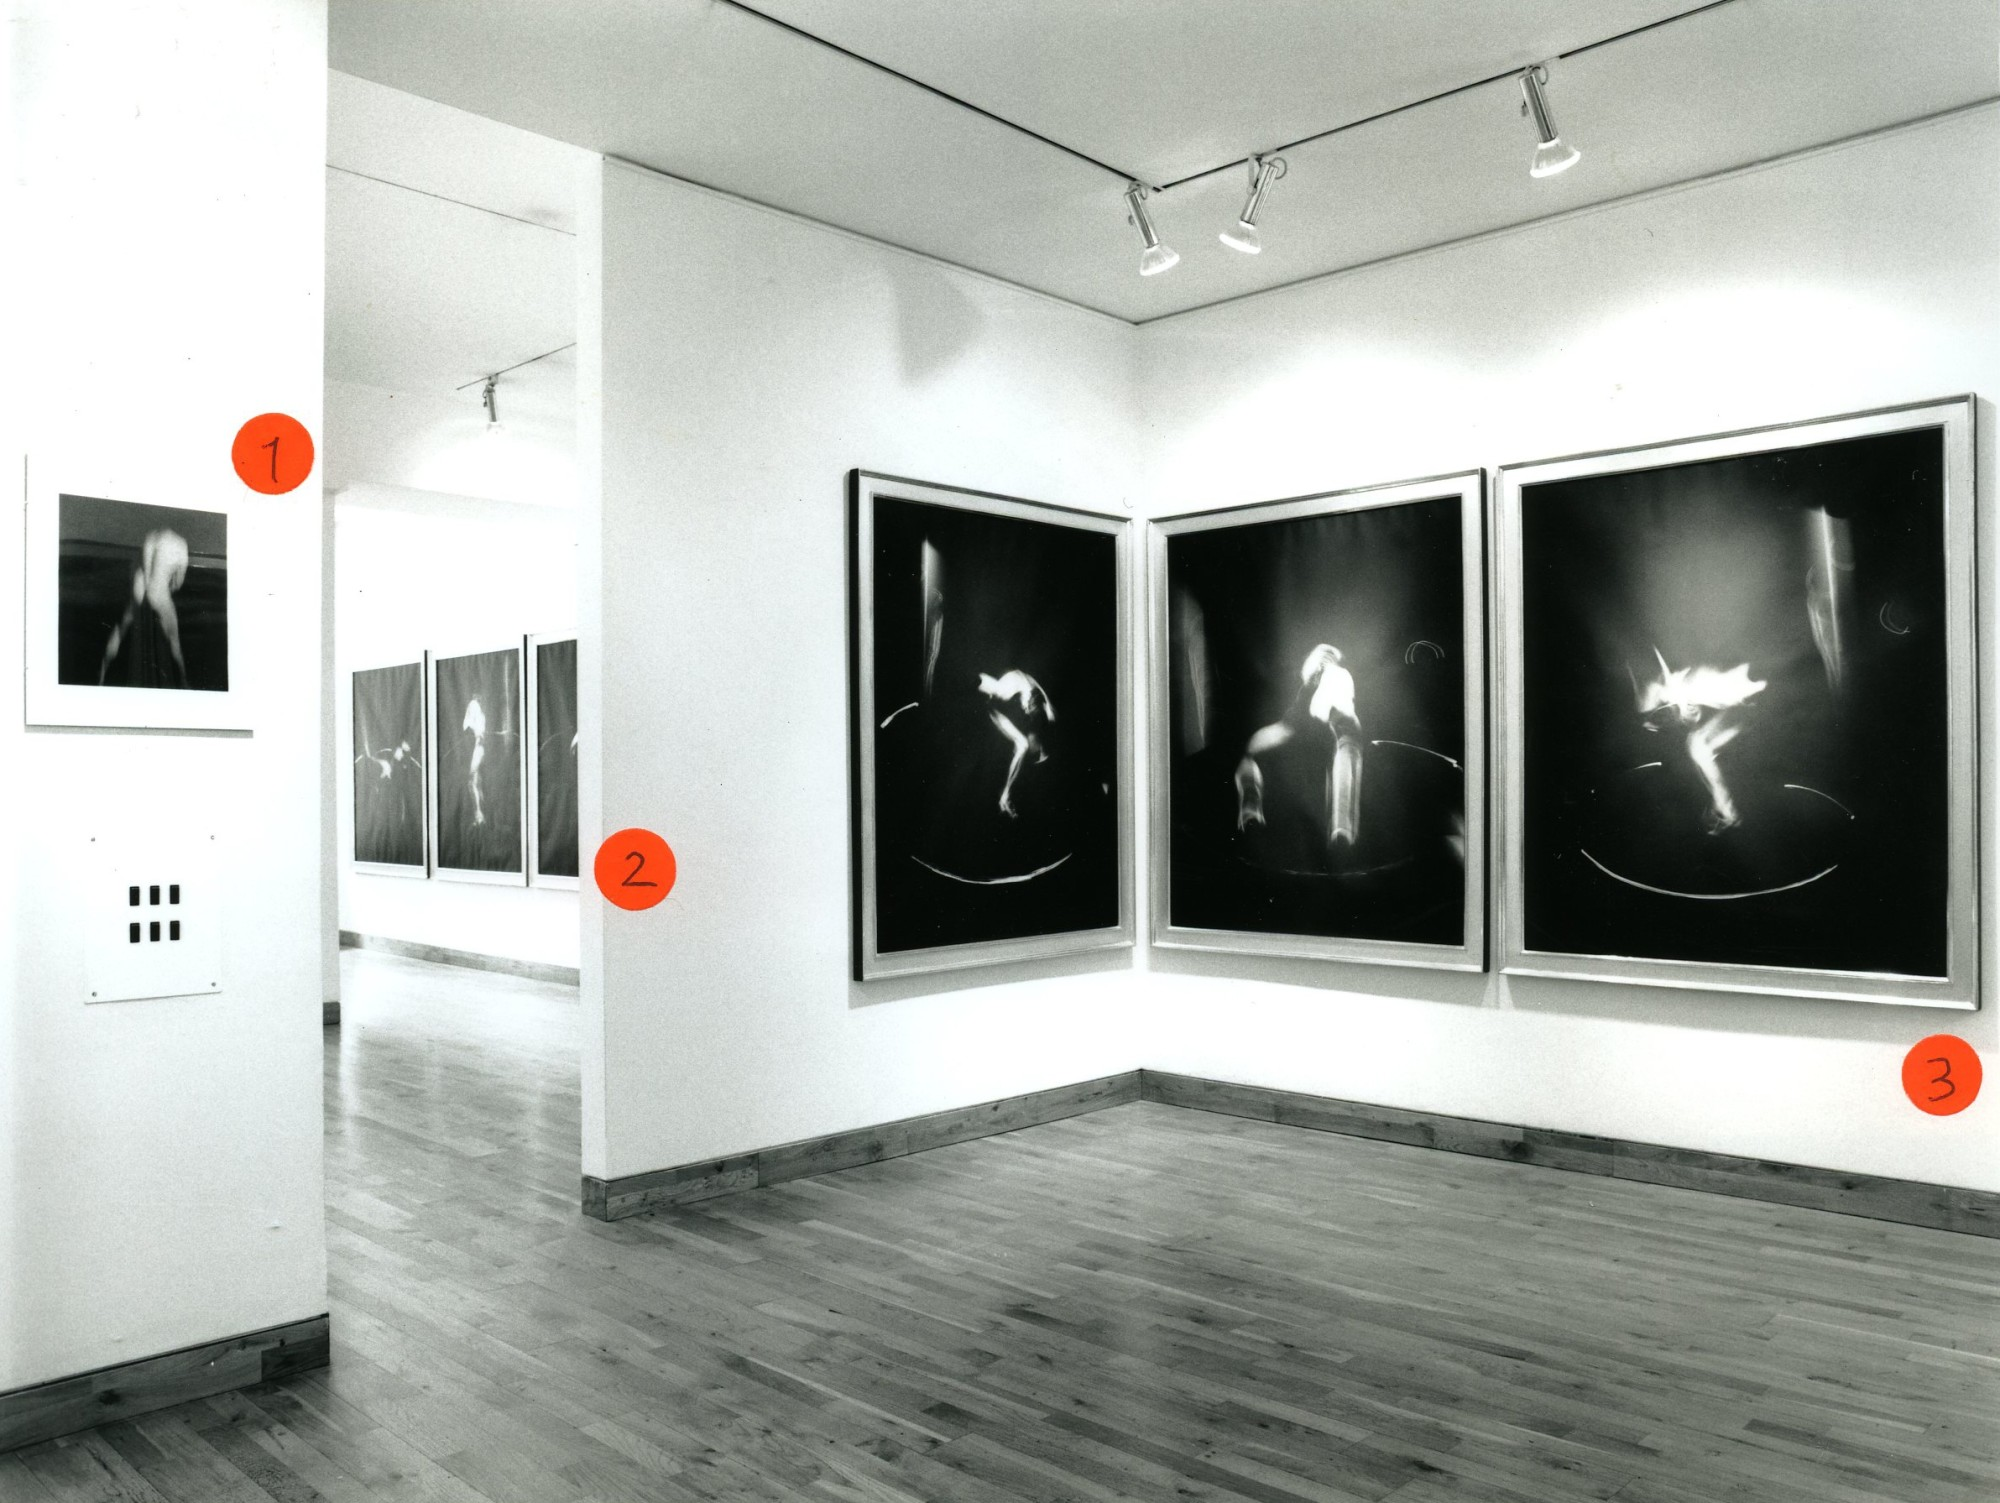 """<span class=""""link fancybox-details-link""""><a href=""""/exhibitions/155/works/image_standalone669/"""">View Detail Page</a></span><p>VICTOR SKREBNESKI 